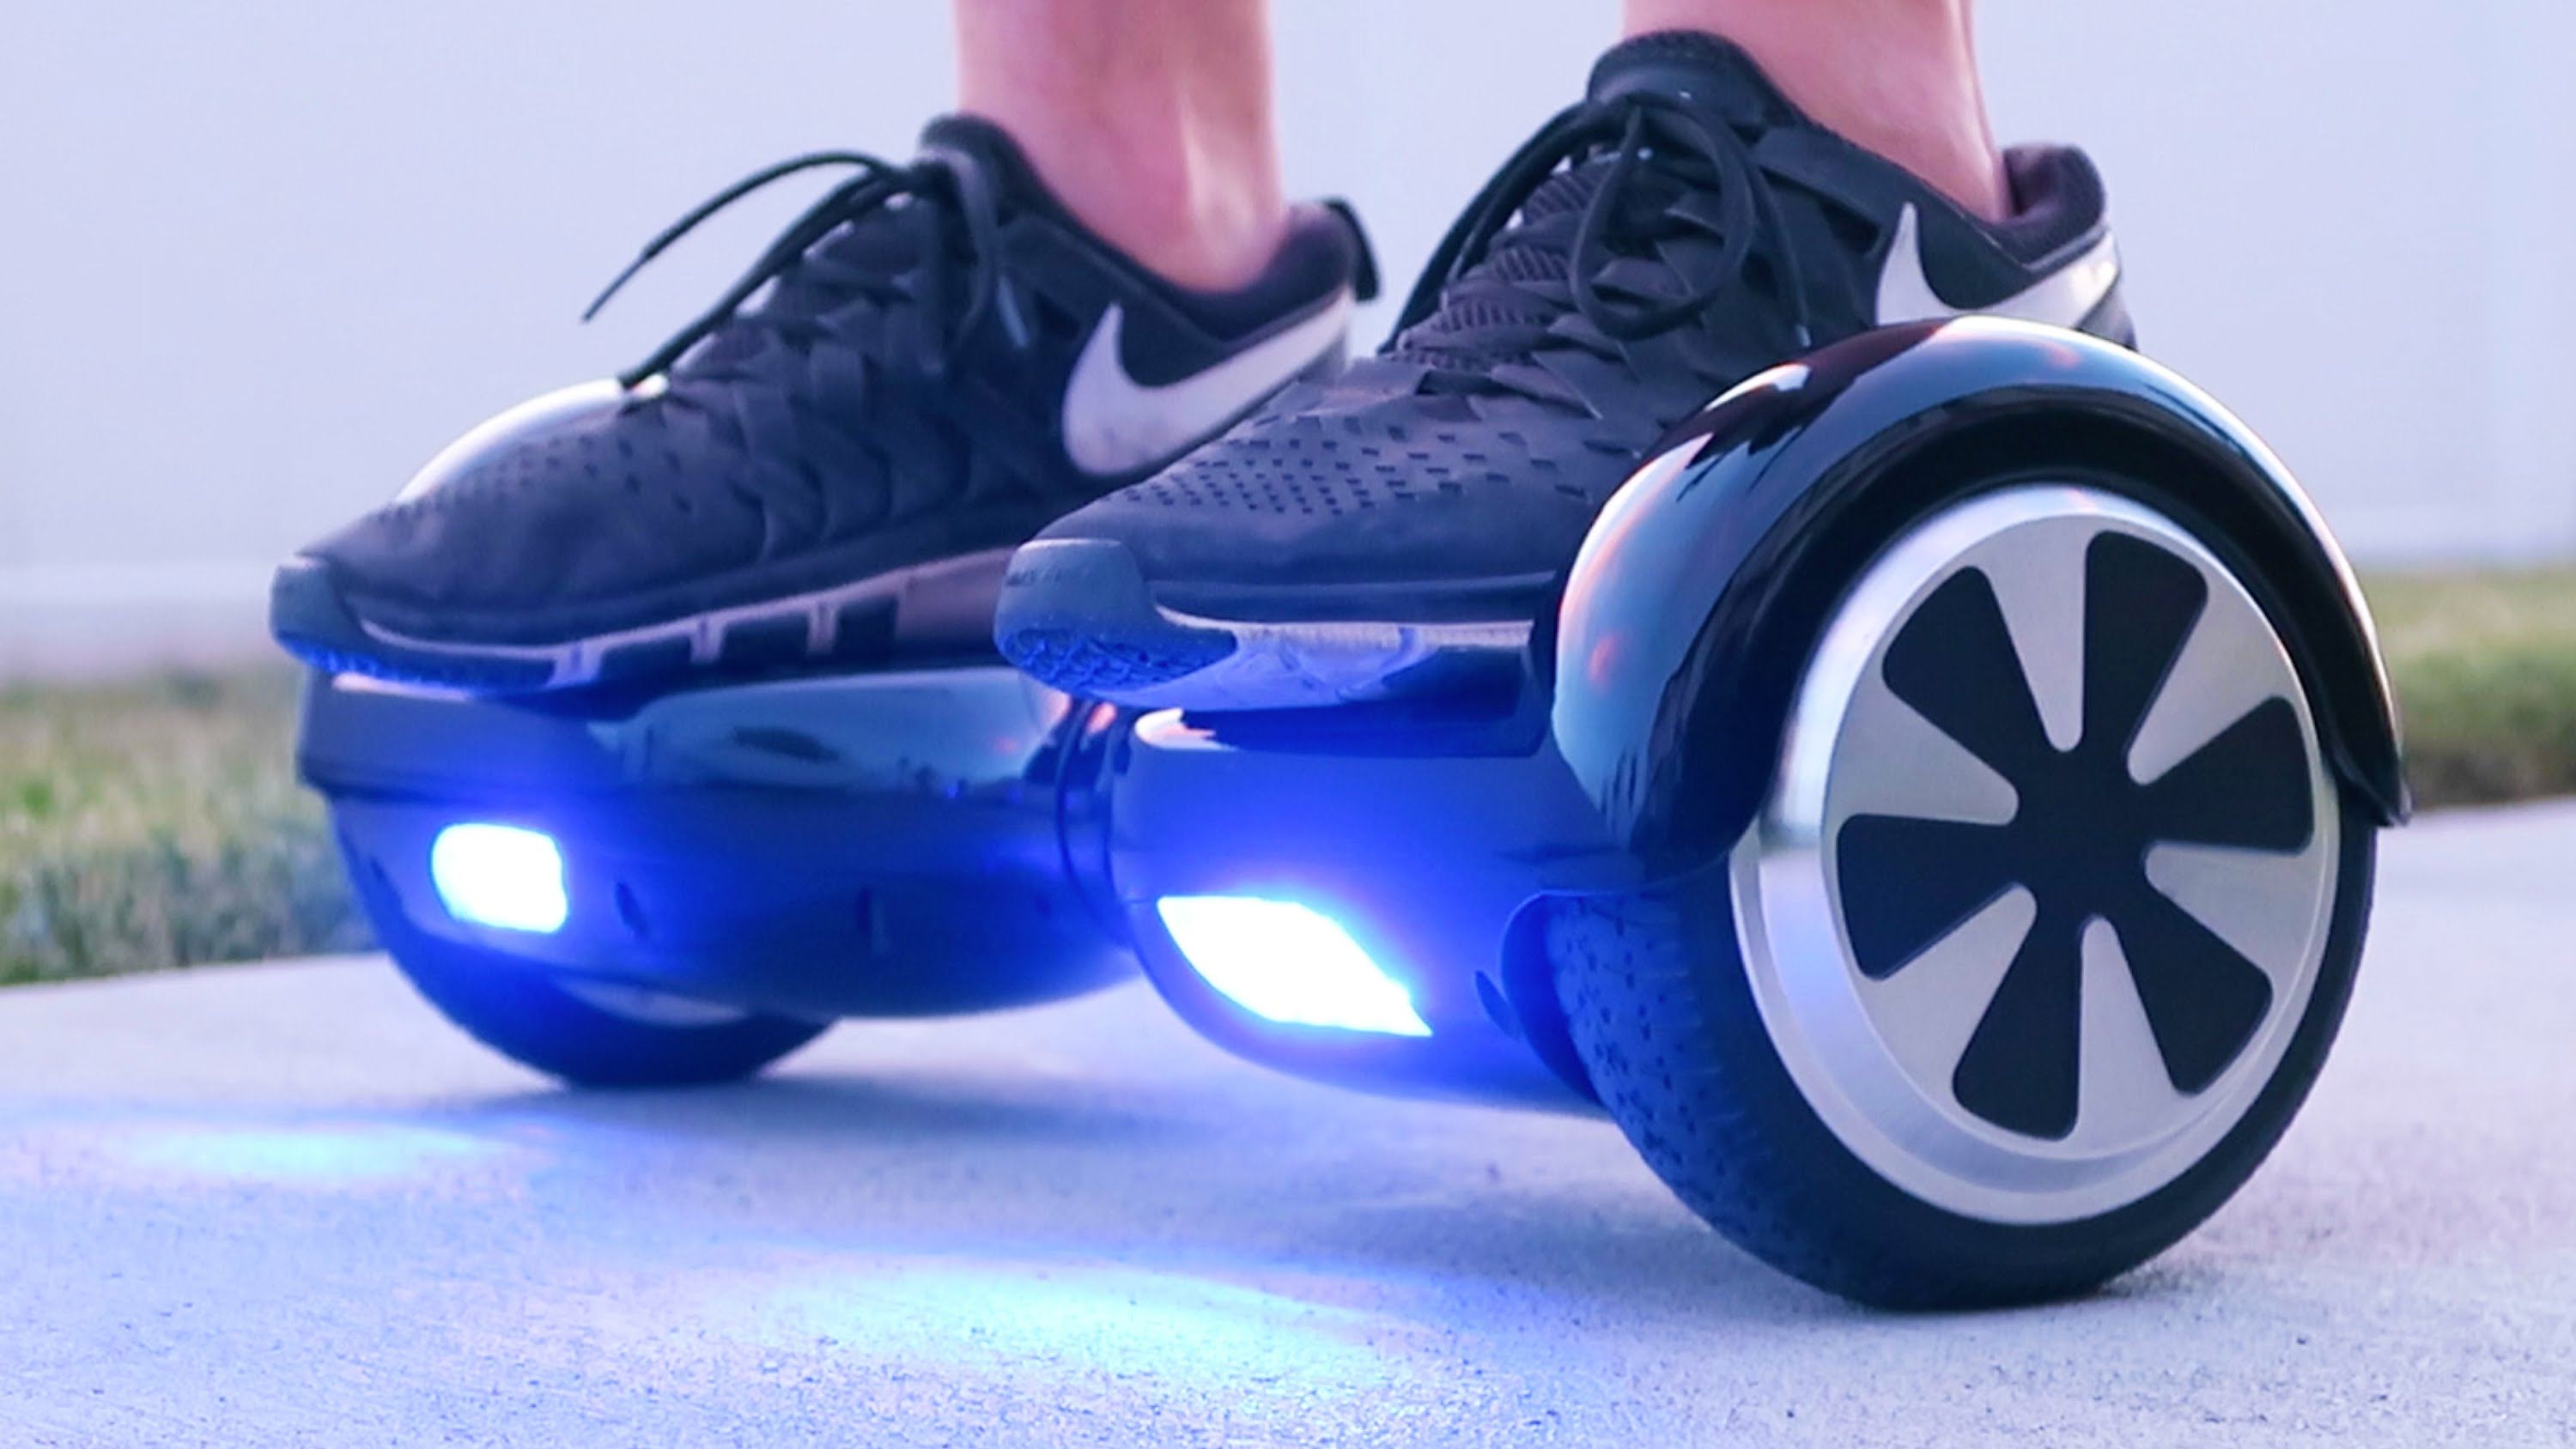 The Story Behind Hoverboards aka Skywalkers